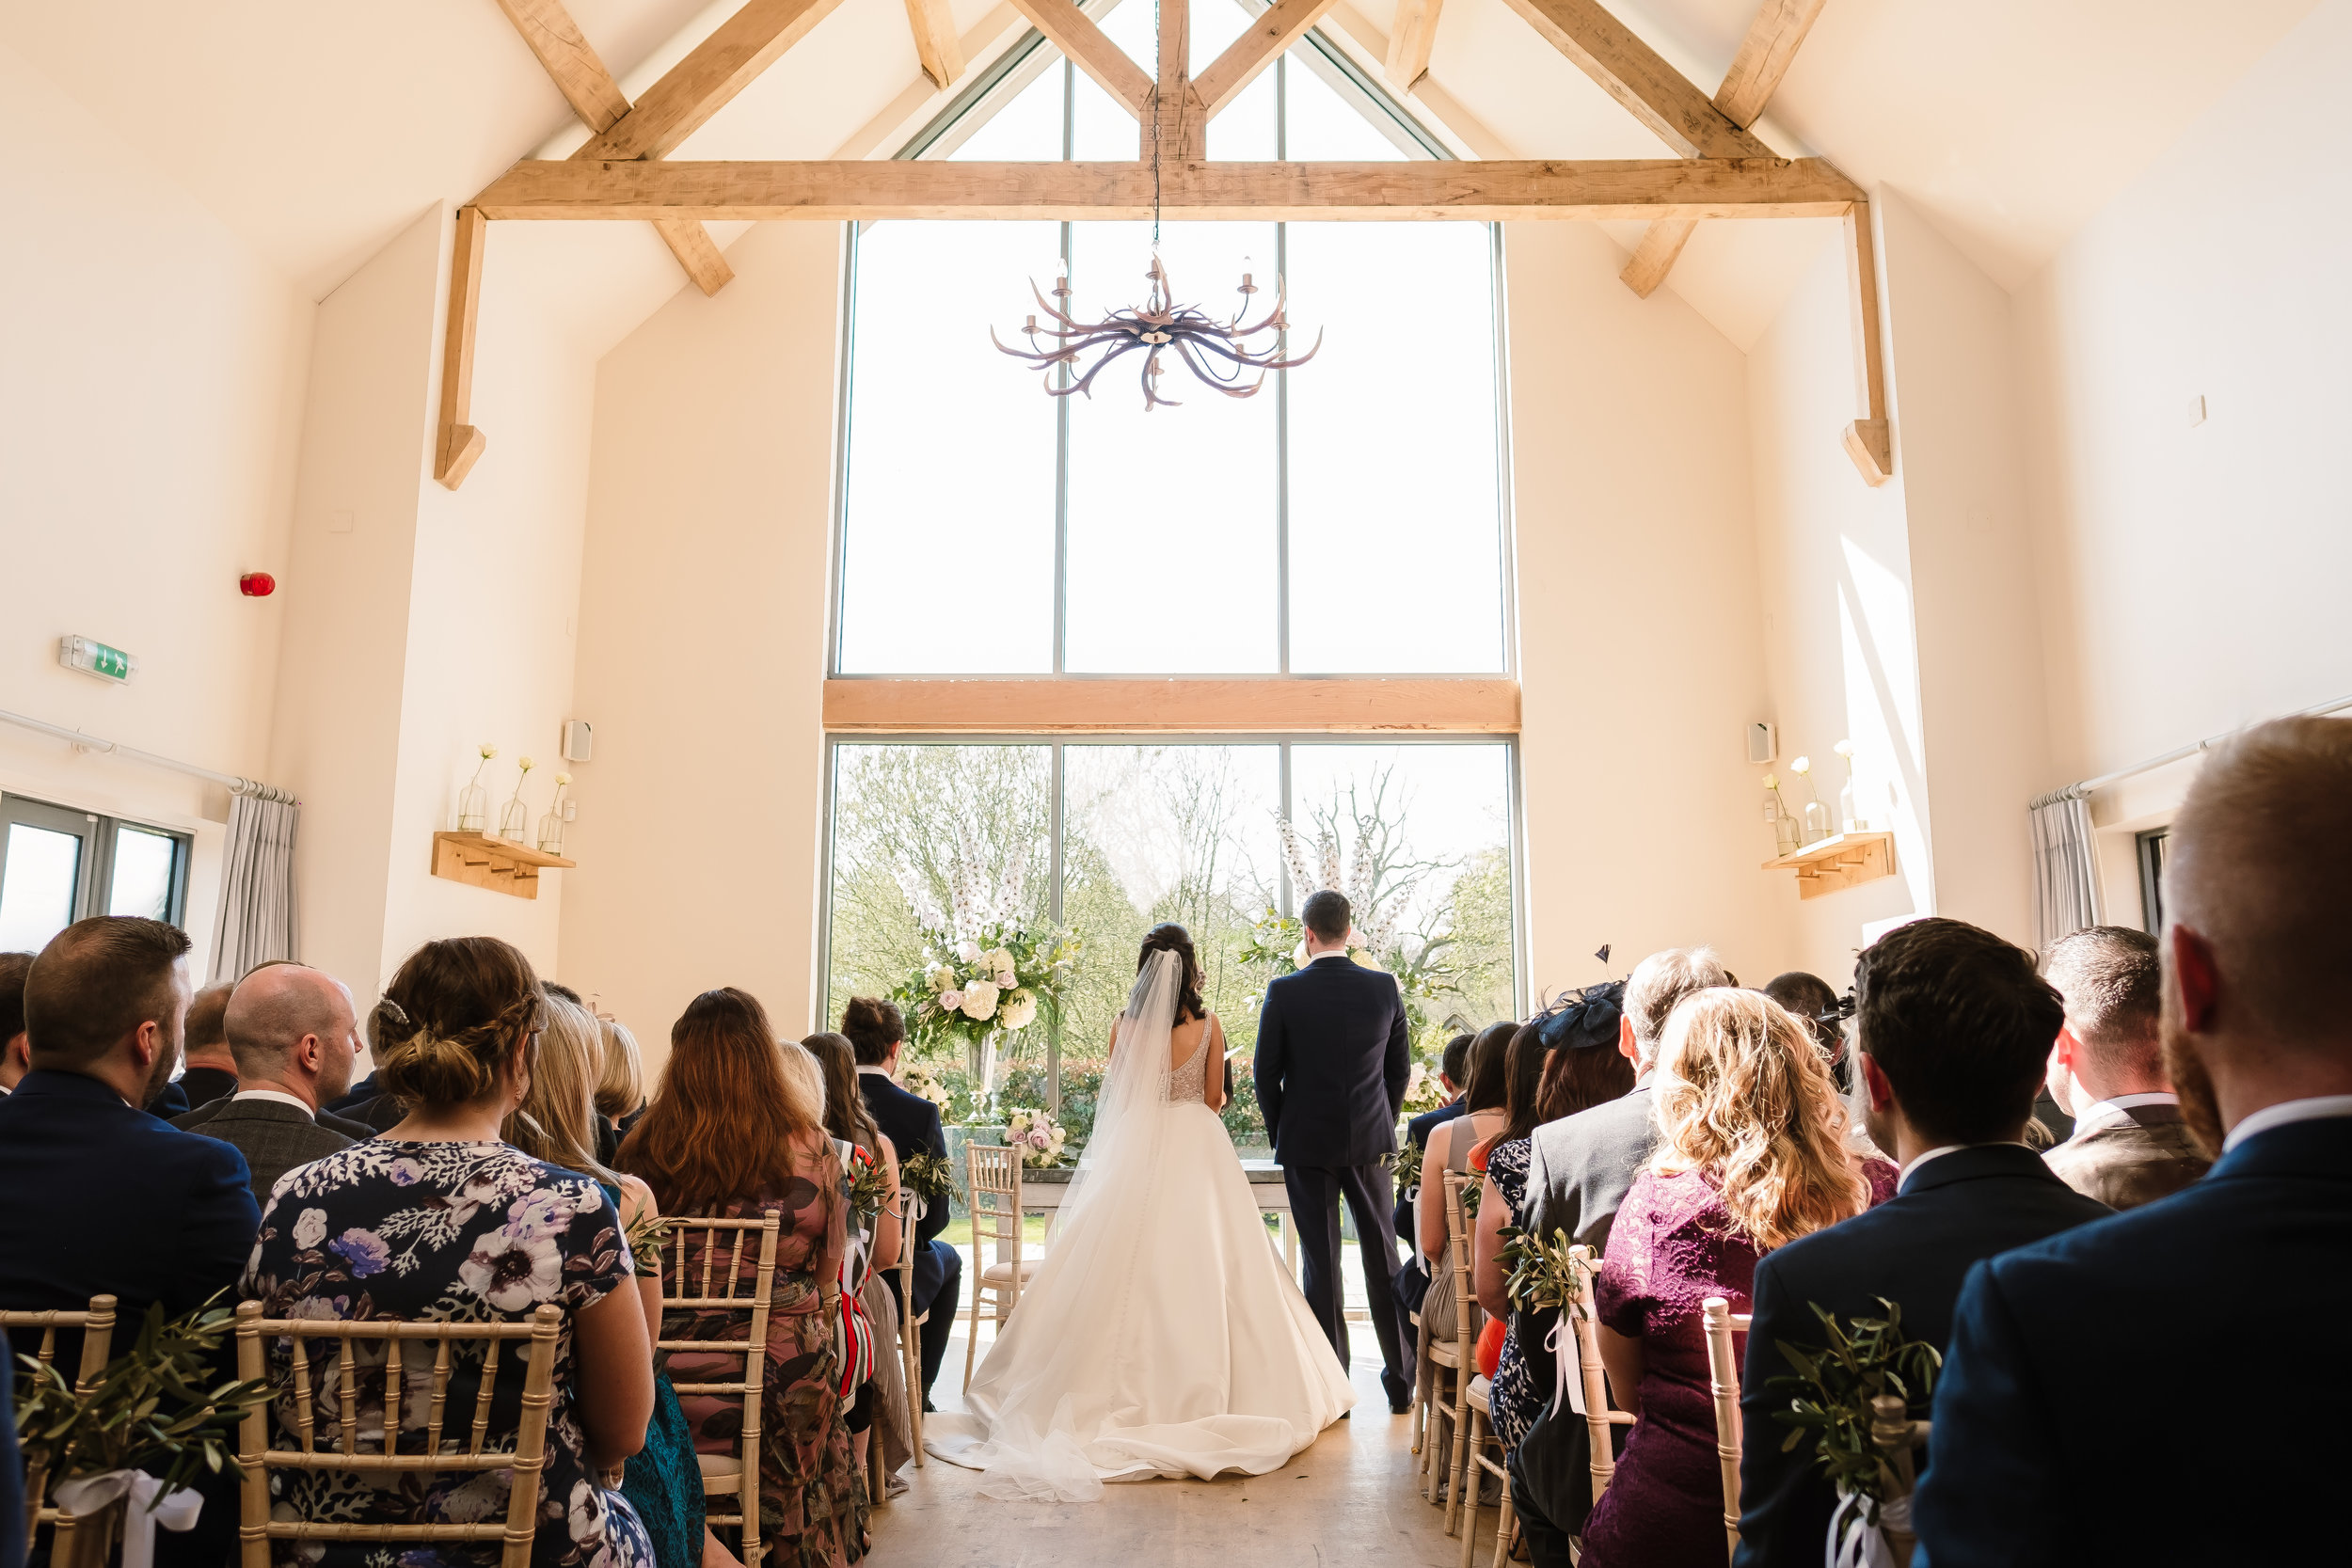 Sarah-Fishlock-Photography : Hampshire-wedding-photographer-hampshire : fleet-wedding-photographer-fleet : Millbridge-Court-Wedding-Photographer : Millbridge-Court-Wedding-Venue : Surrey-wedding-venue-587.jpg